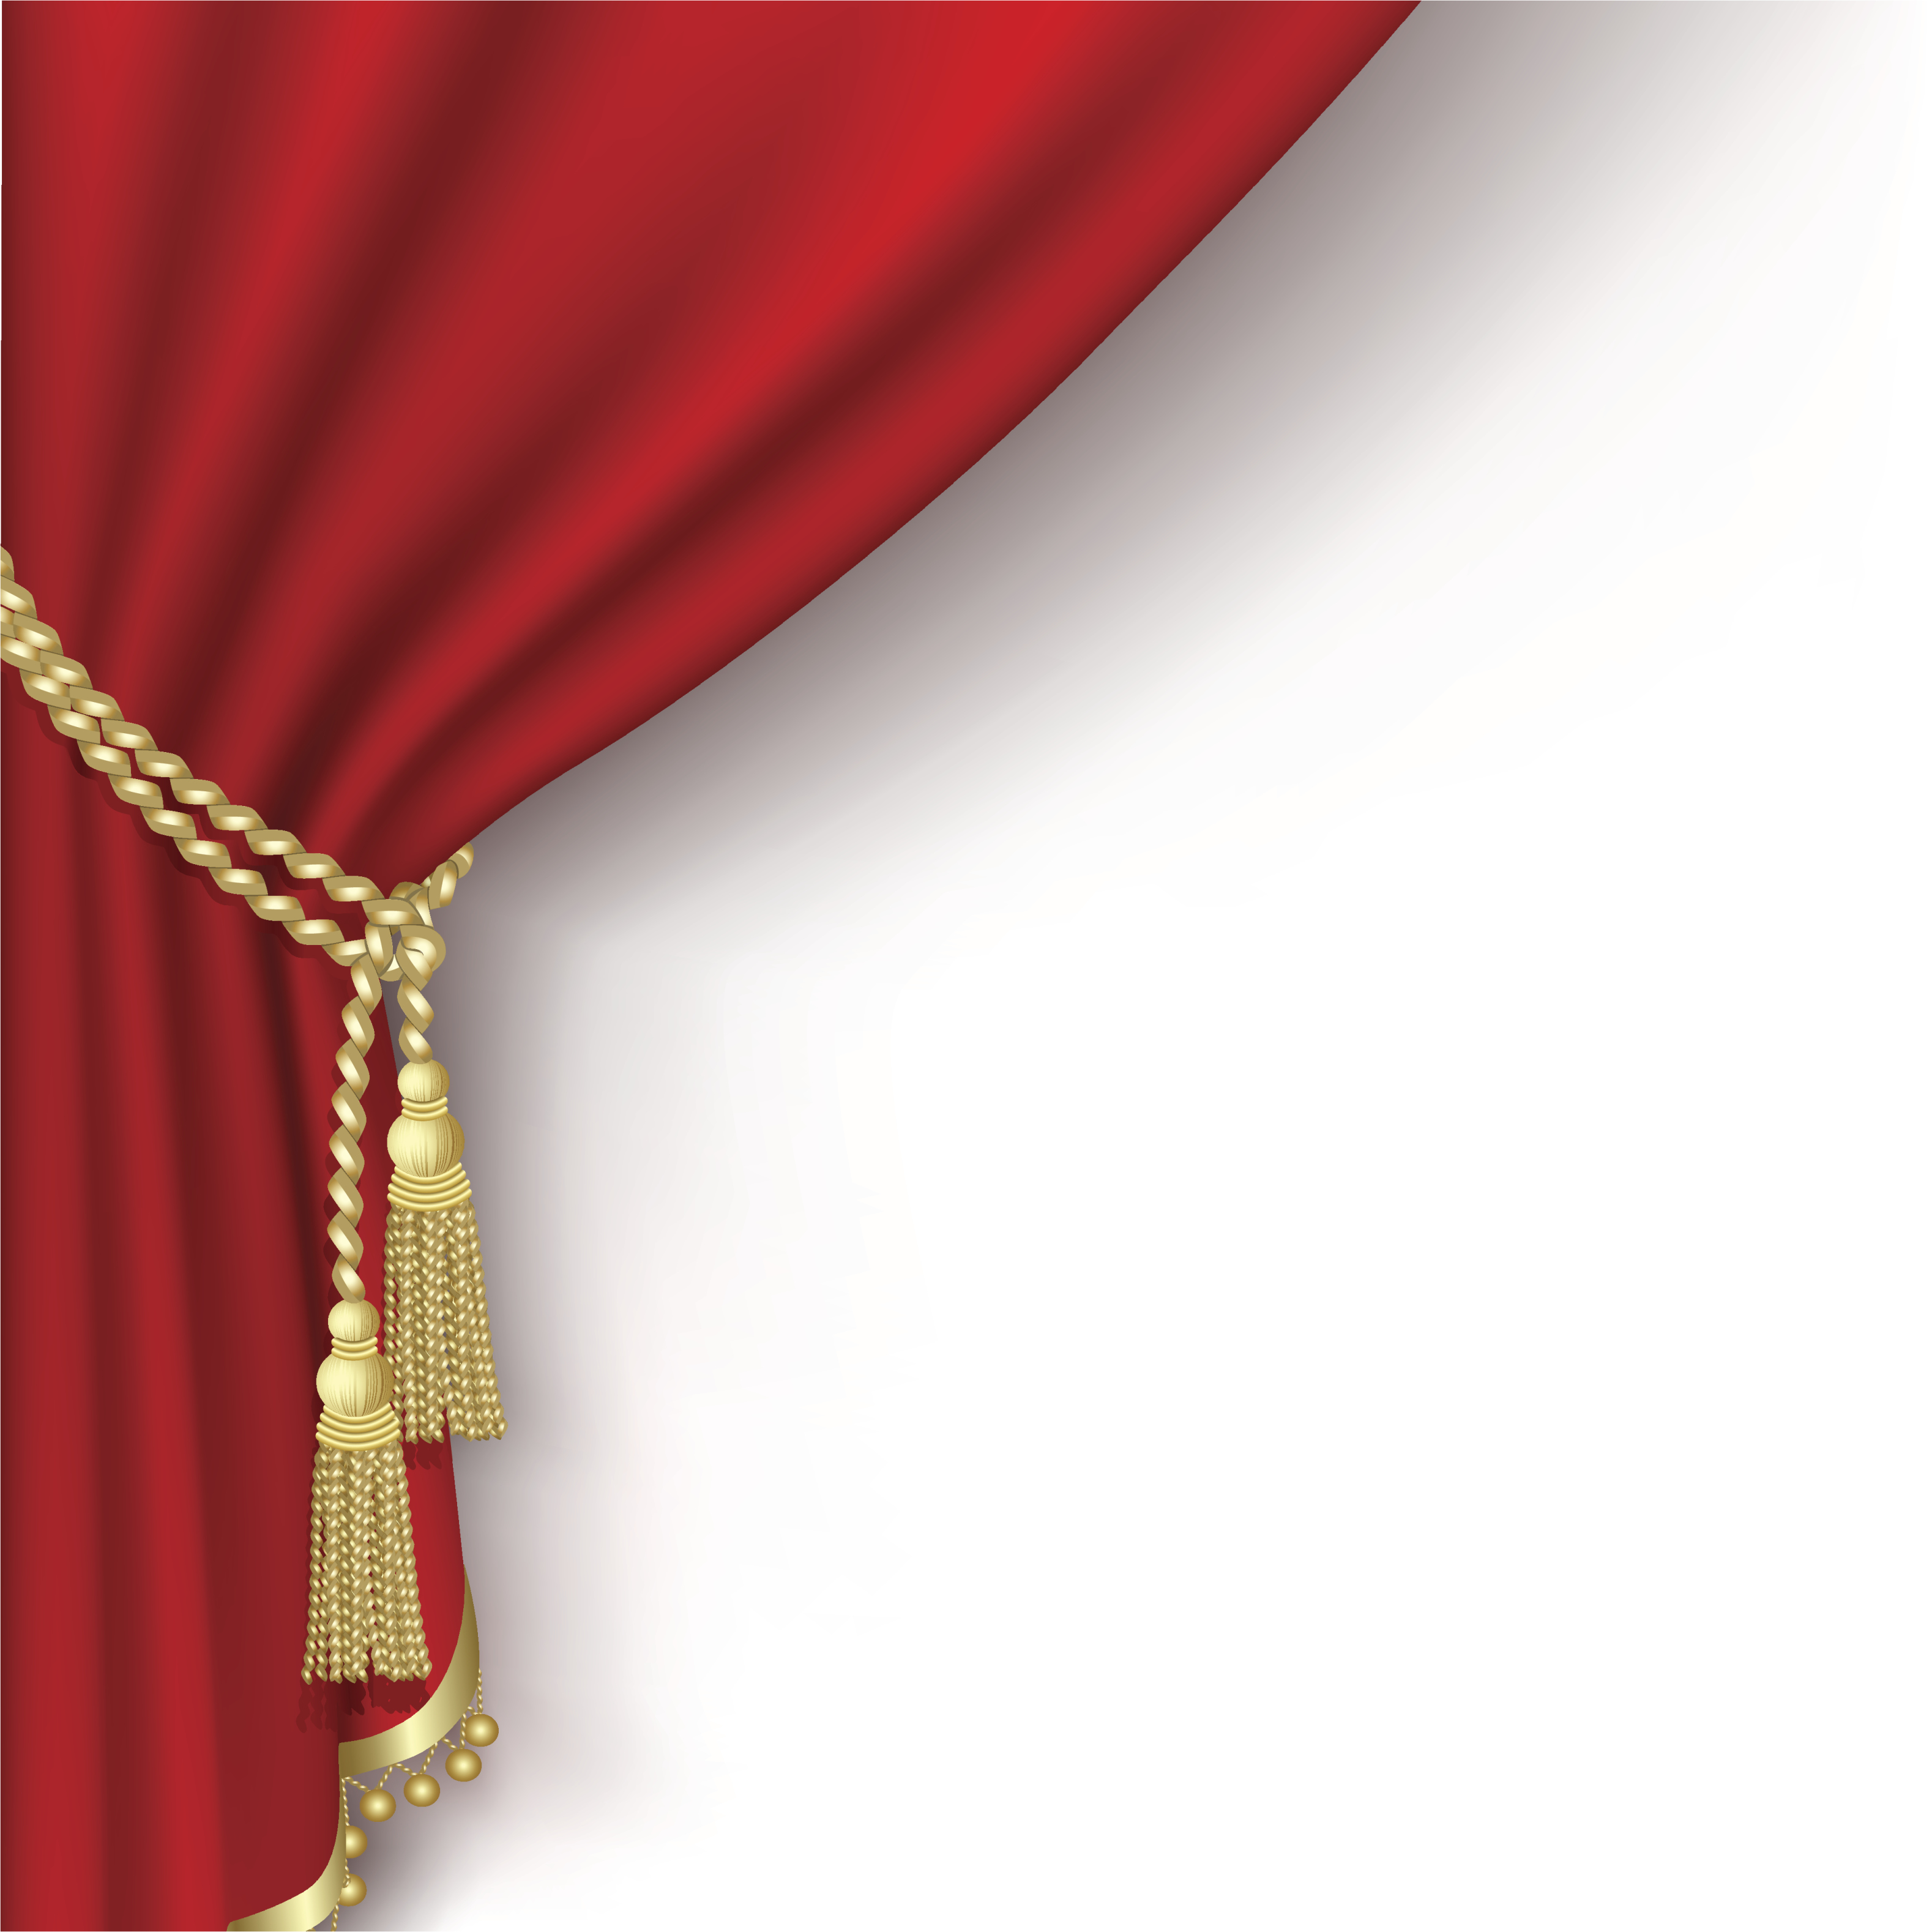 Red stage curtains - Red Movie Theater Curtains Images Femalecelebrity